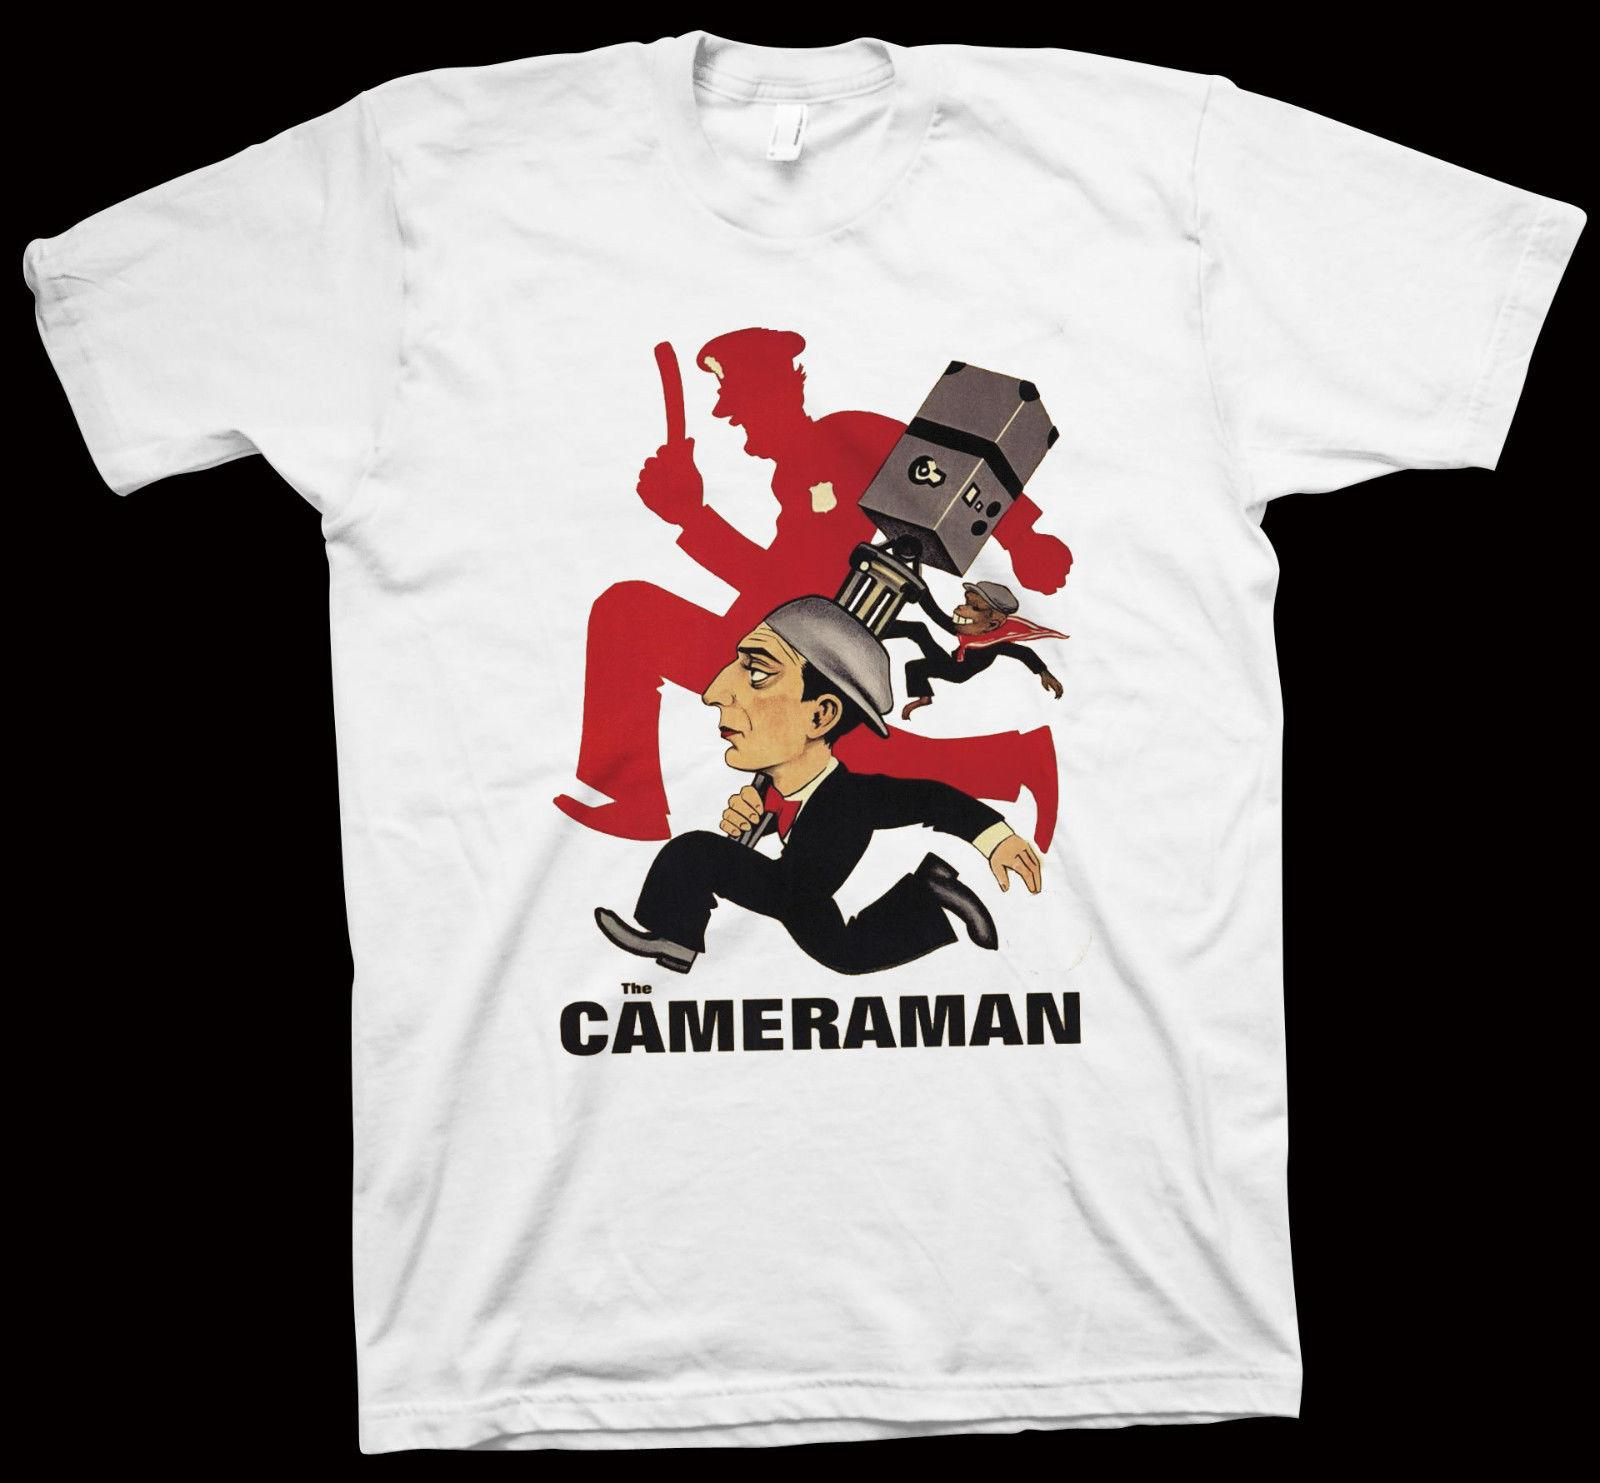 The Cameraman camiseta Edward Sedgwick, Buster Keaton, cine, Hollywood, película